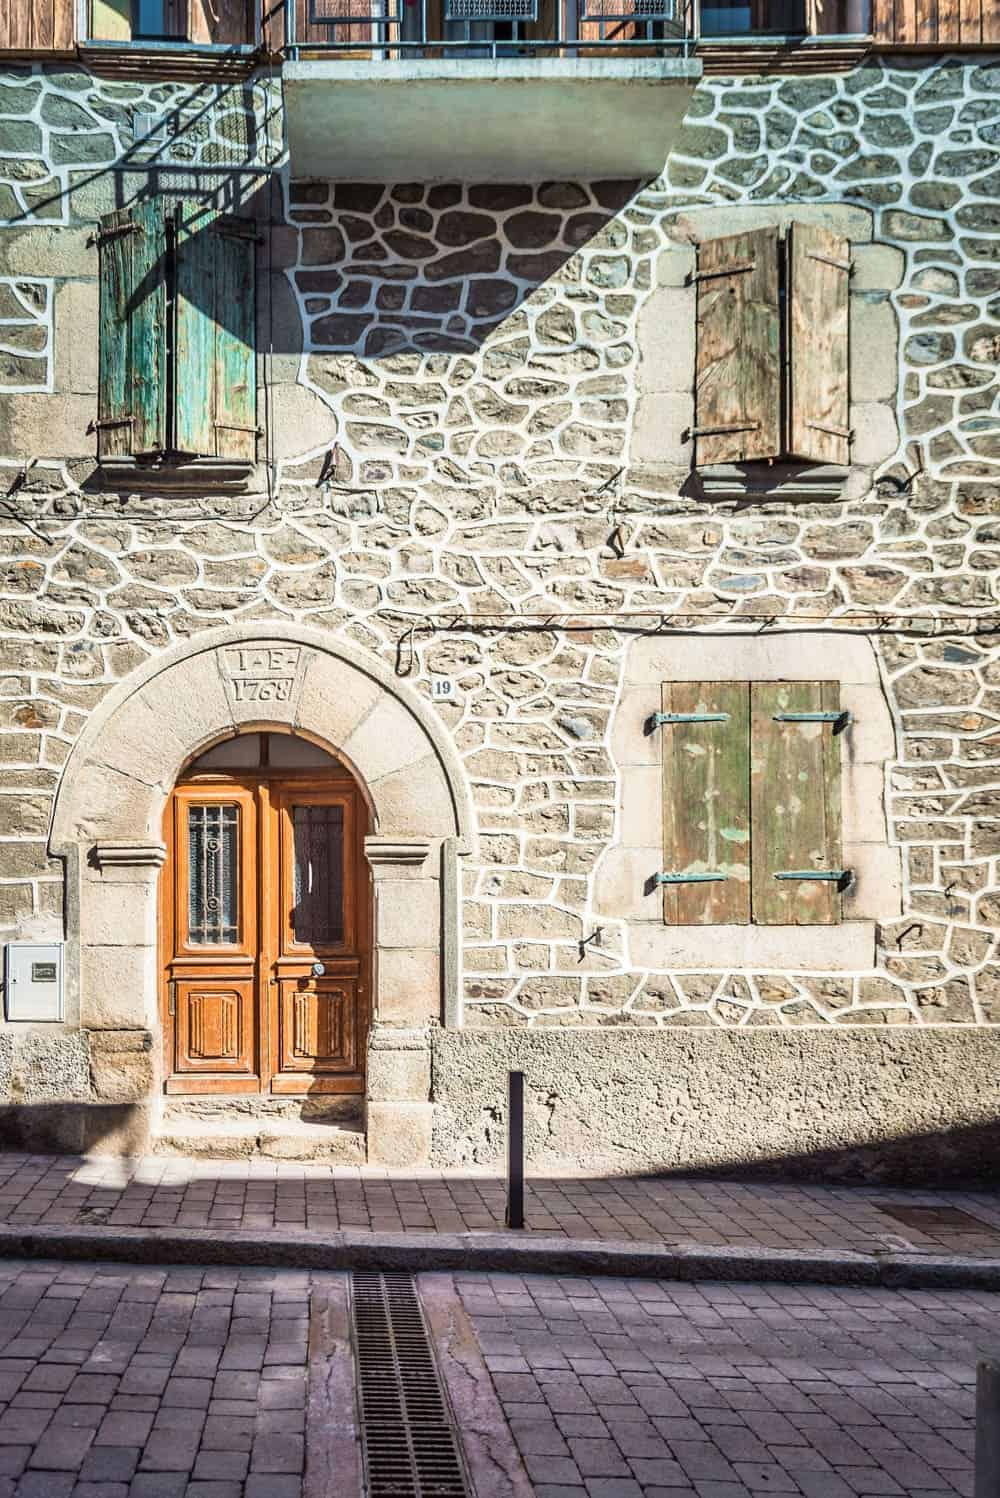 Visit Spain Without Leaving France Llivia. A Spanish enclave in France